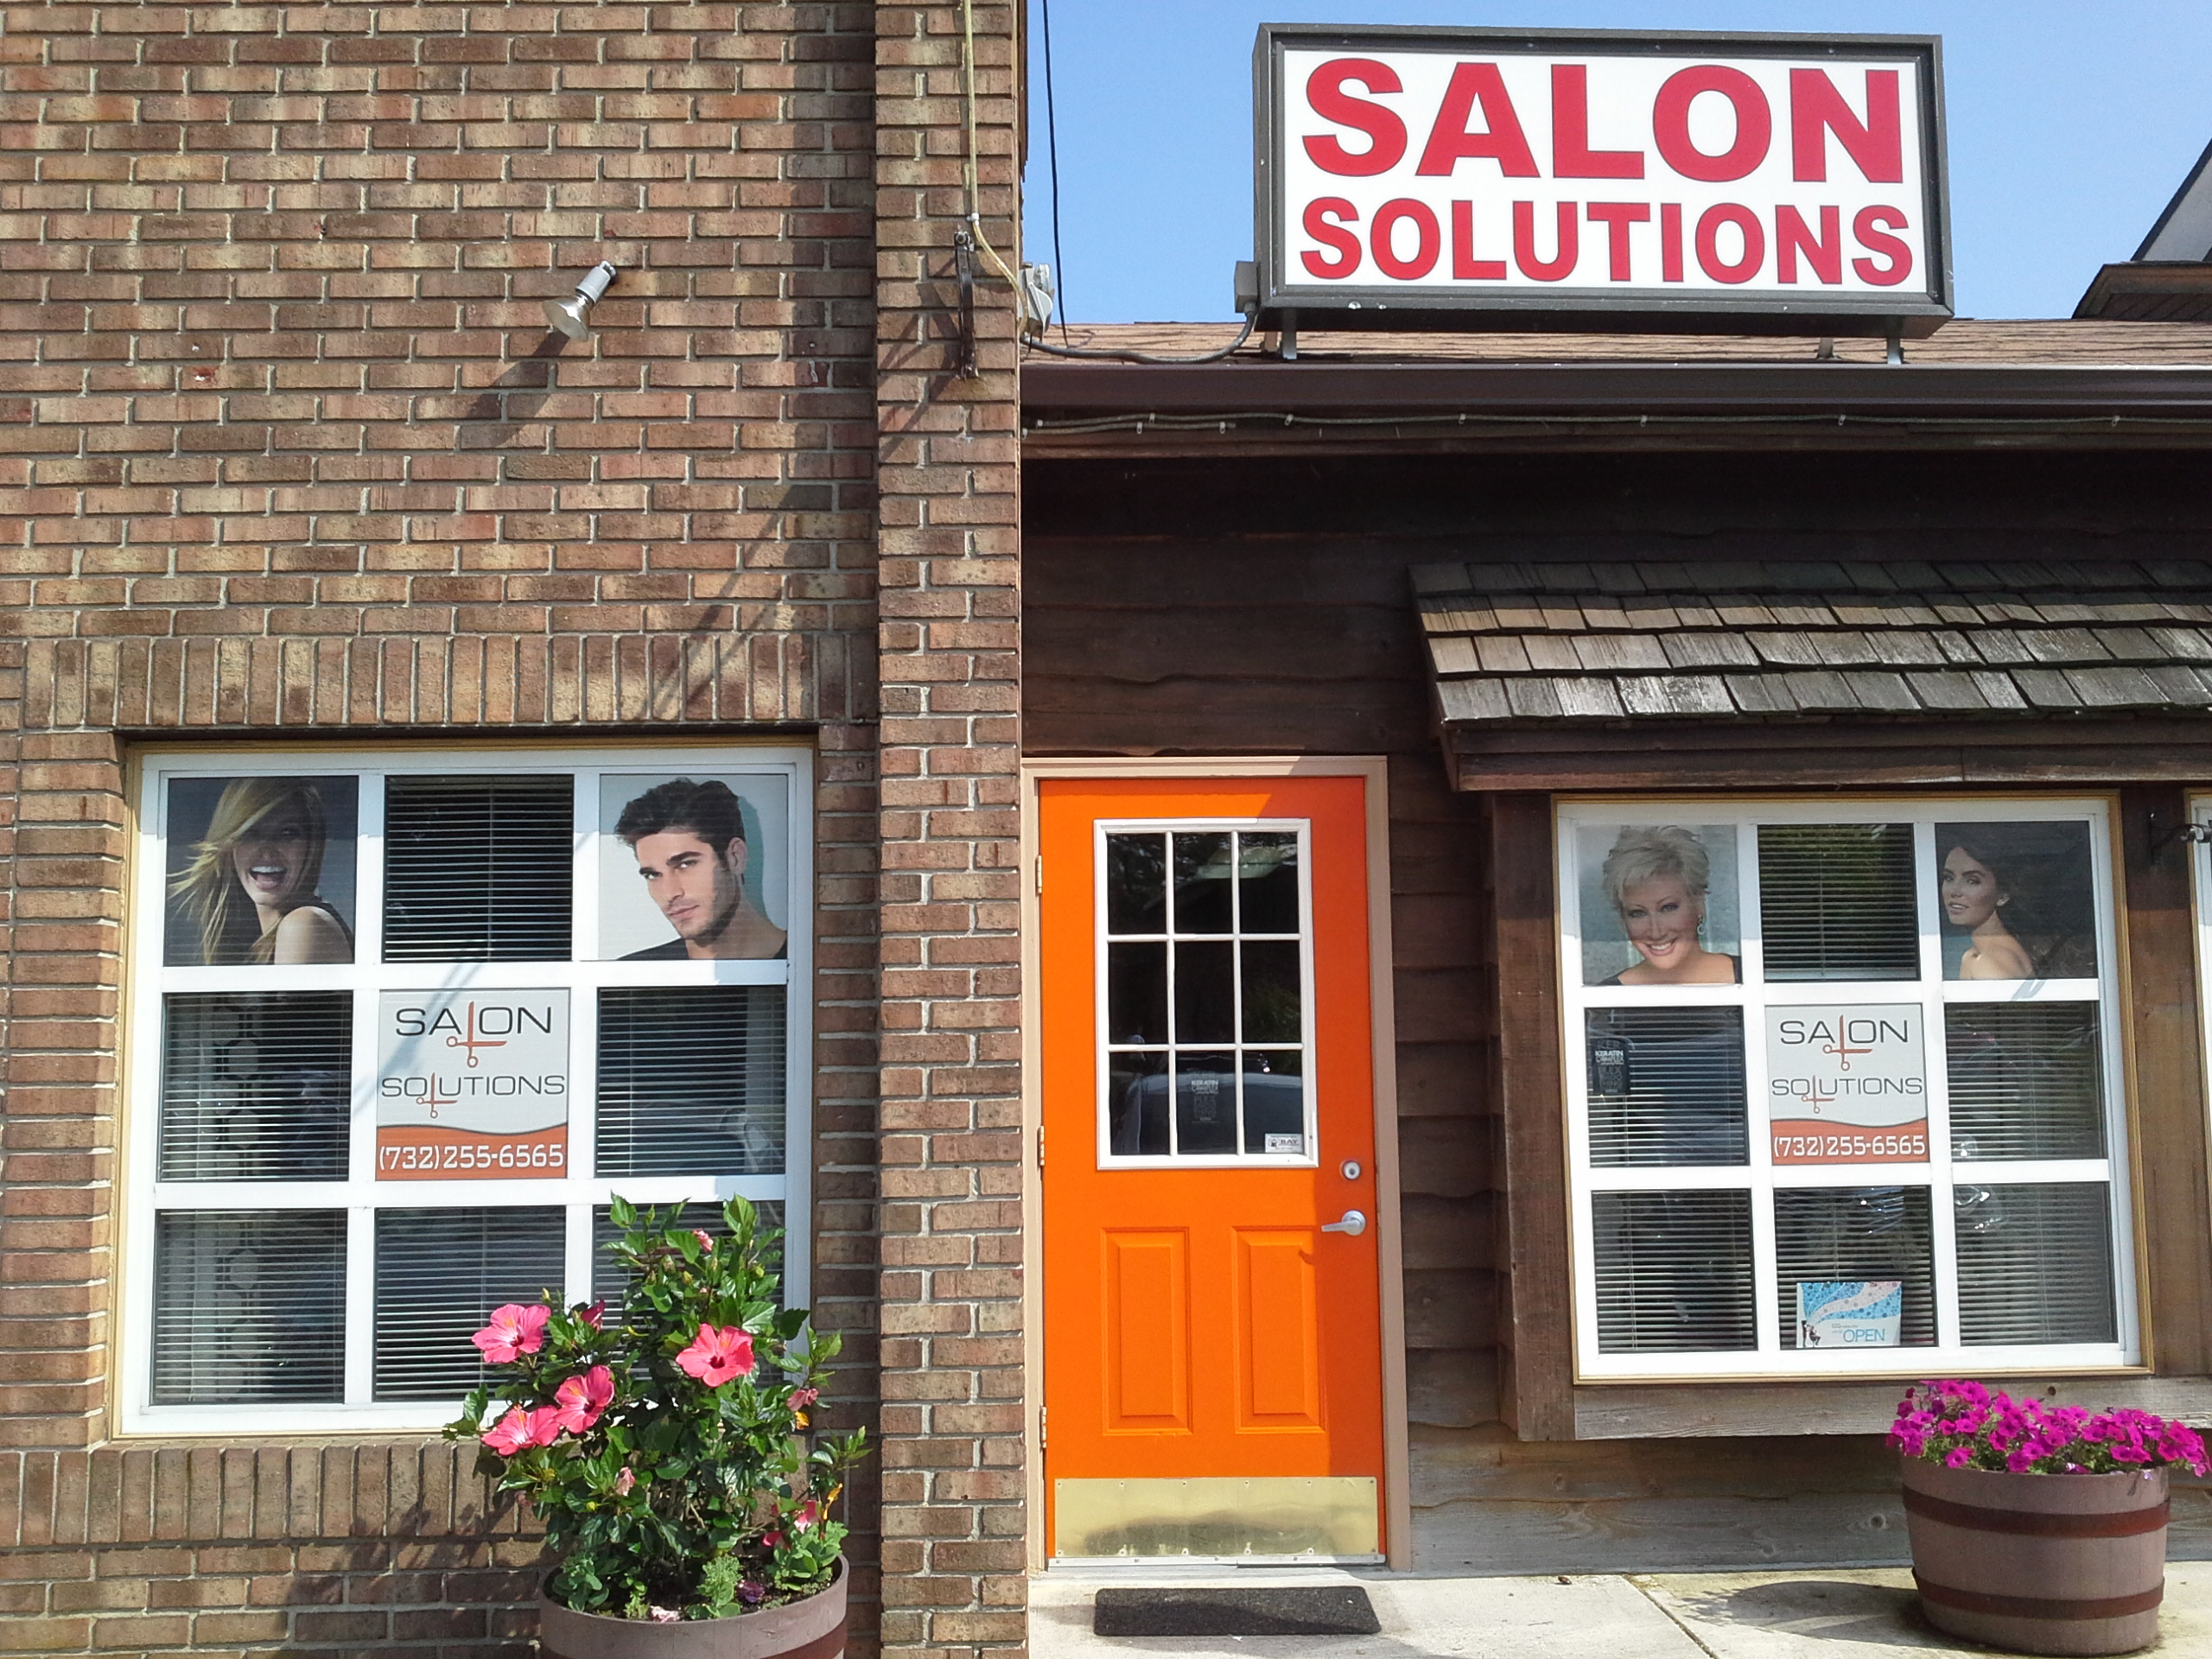 salon solutions toms river new jersey nj